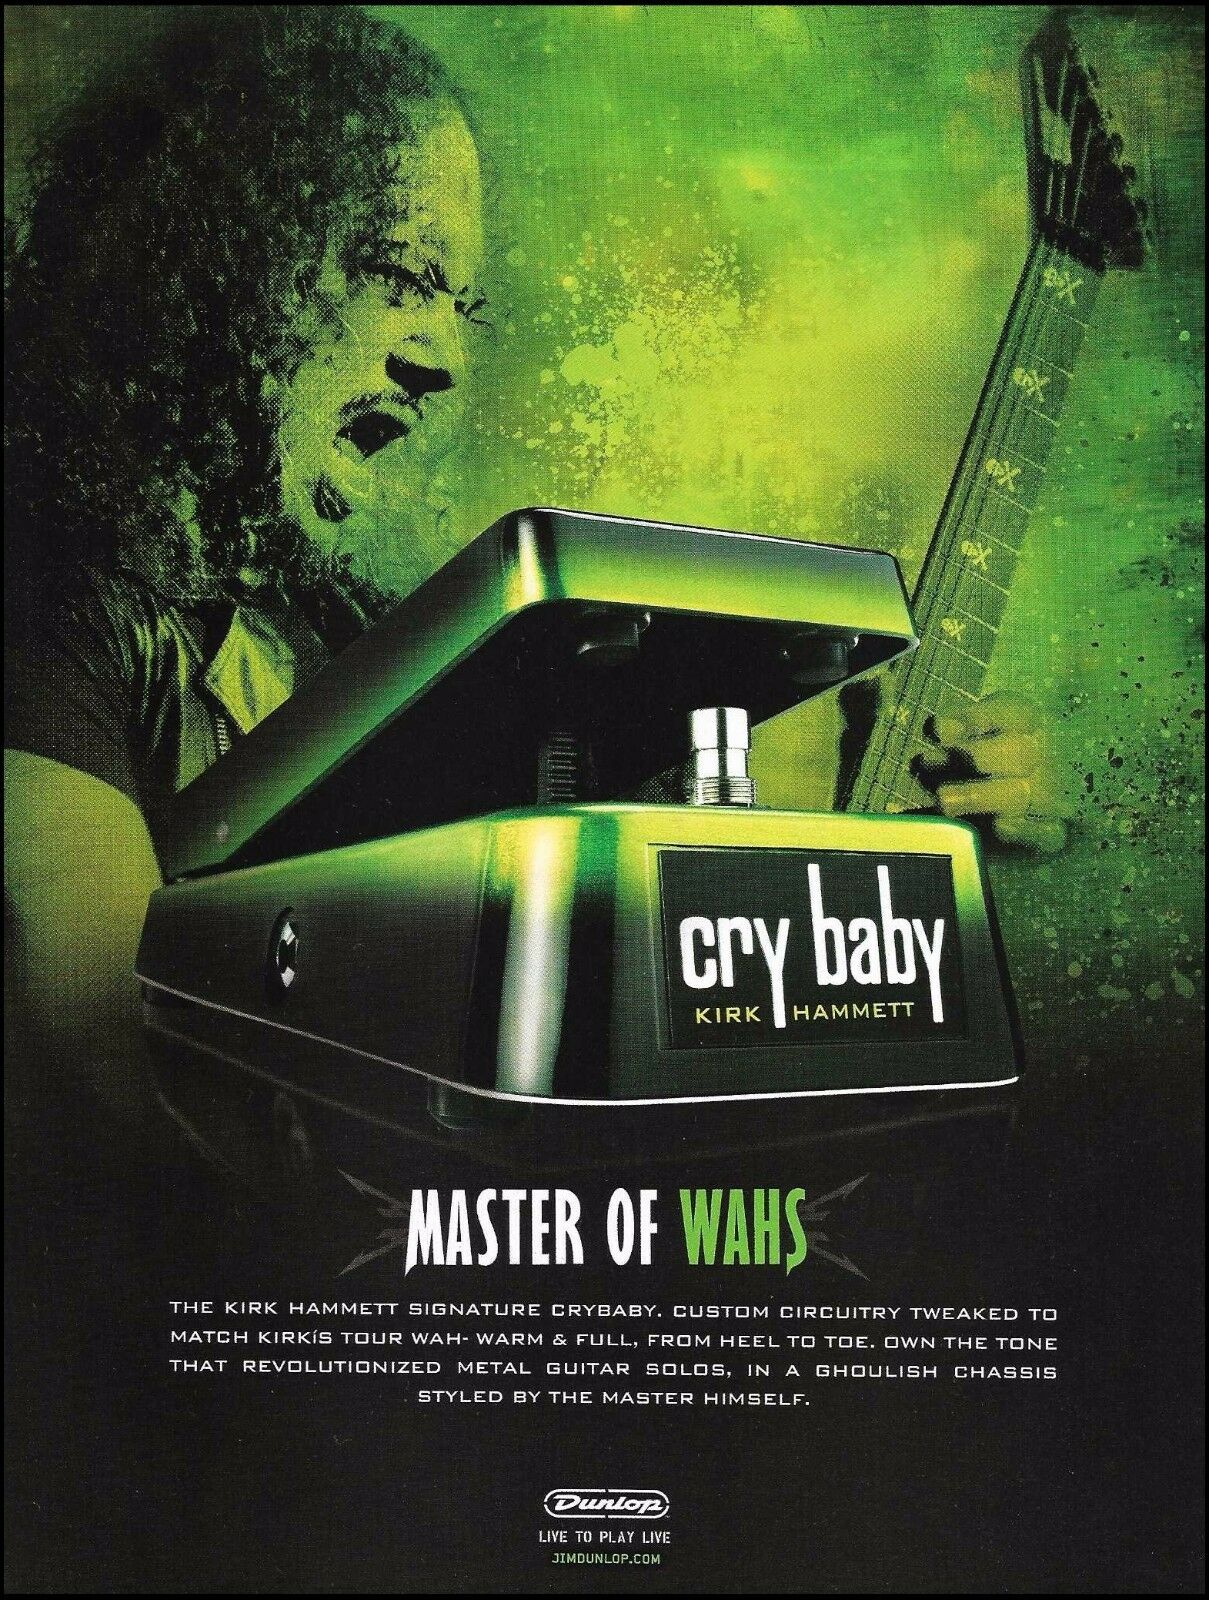 Metallica Kirk Hammett Signature Cry Baby Wah Pedal Ad 8 X 11 1993 1 Of See More